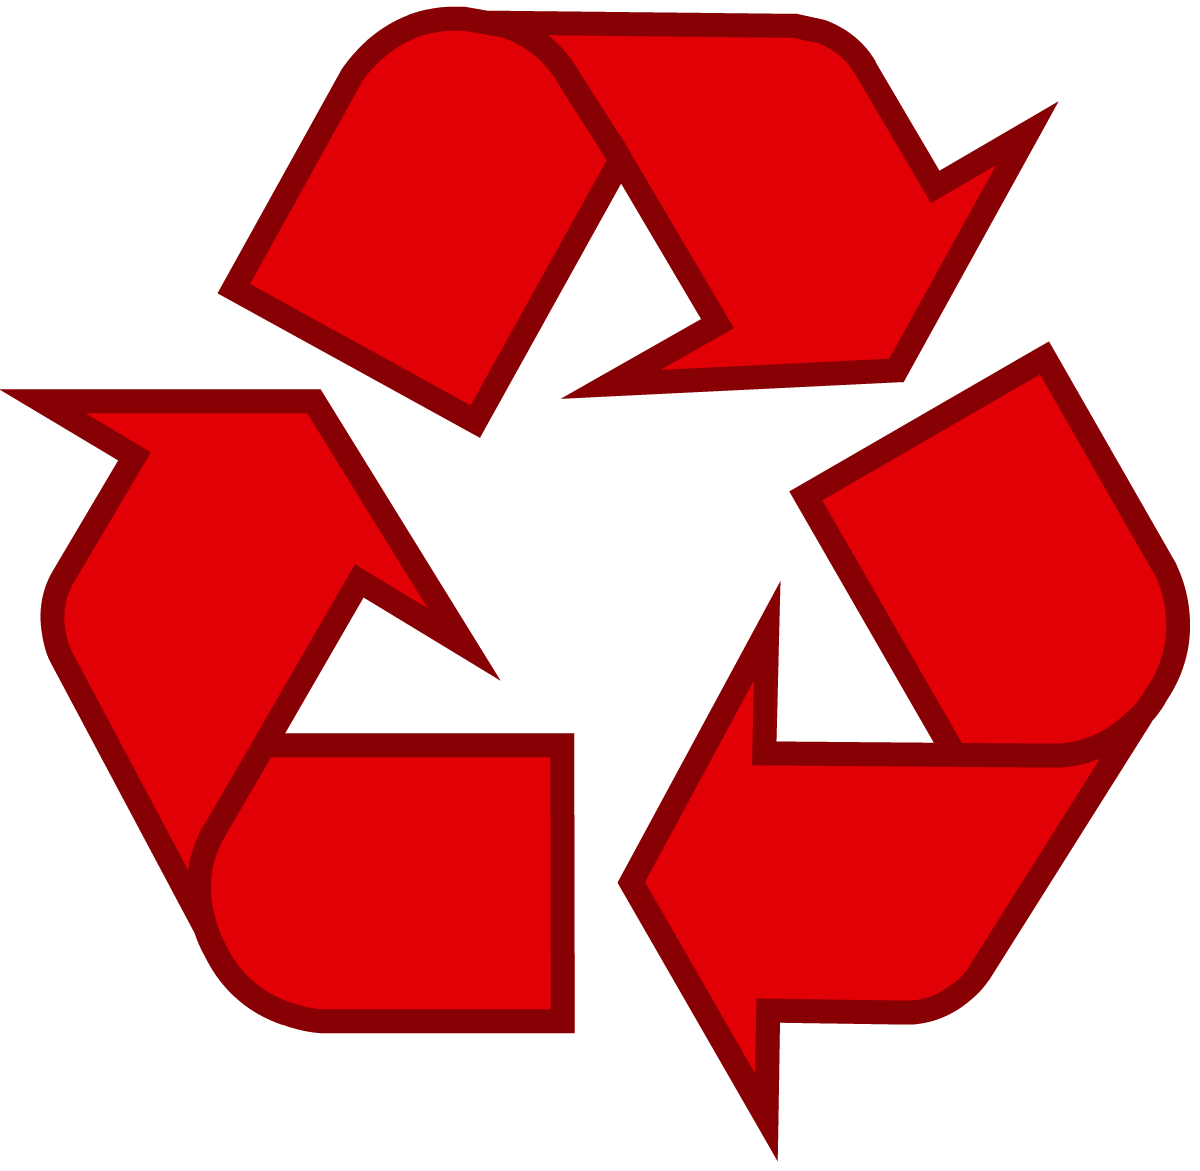 Red universal recycling symbol / logo / sign http//www